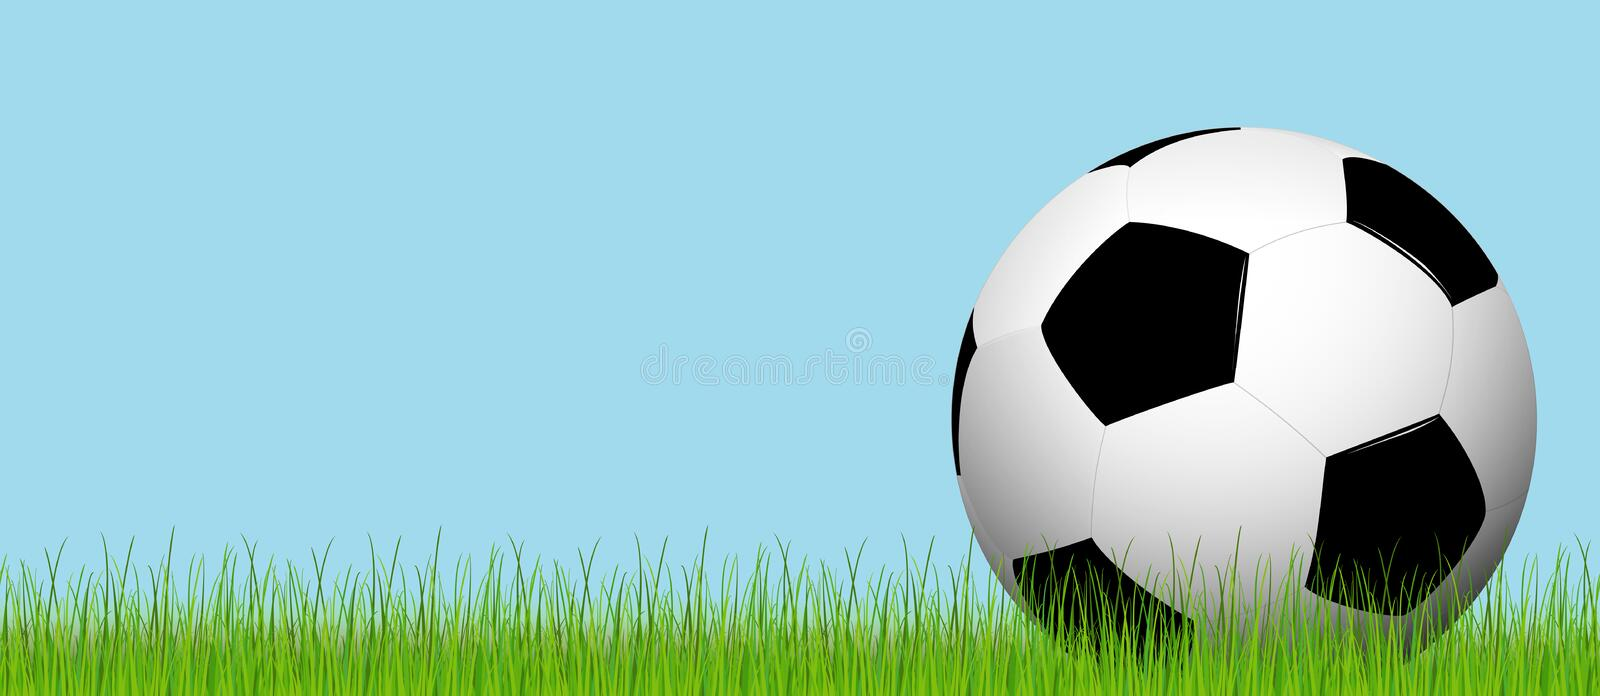 Football lying on the grass. Black and white soccer ball lying on the grass with blue sky vector illustration